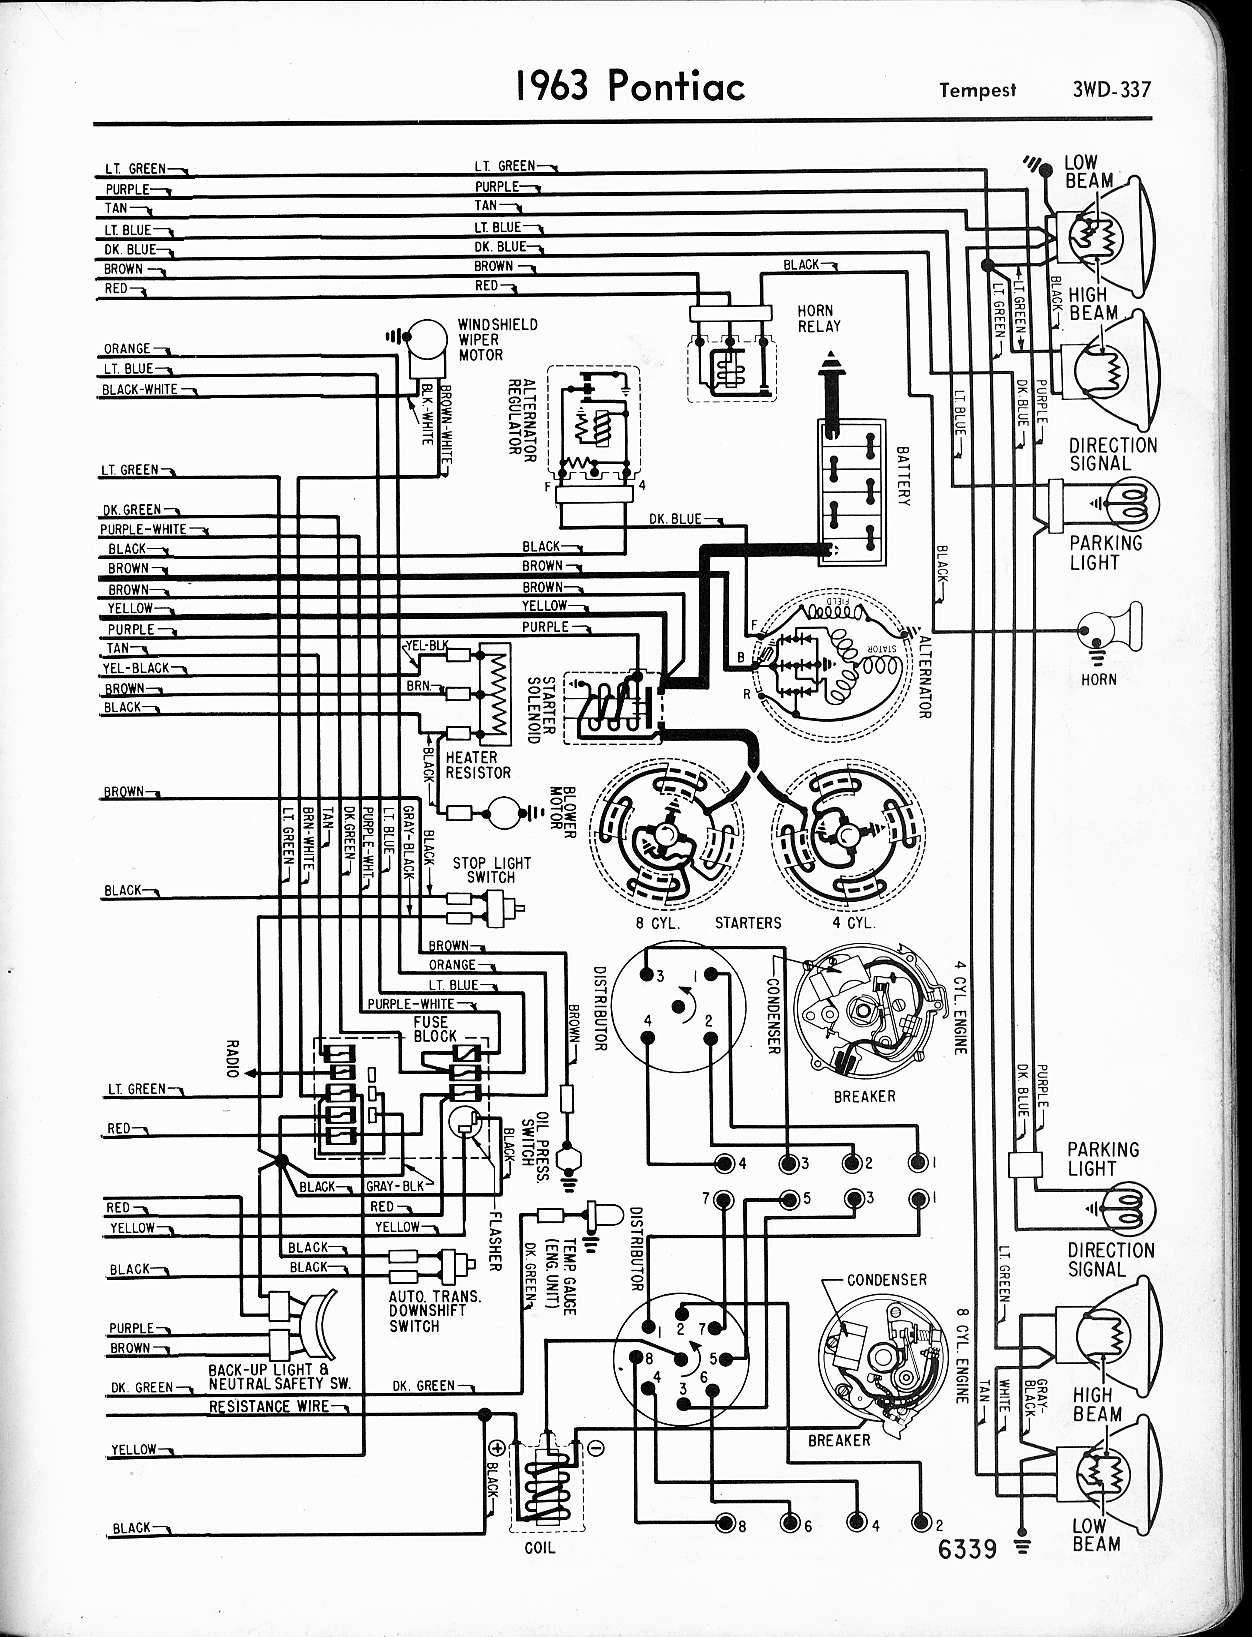 Diagram 2000 Chrysler Lhs Wiring Diagram Full Version Hd Quality Wiring Diagram Stoneswiring2k Atuttasosta It